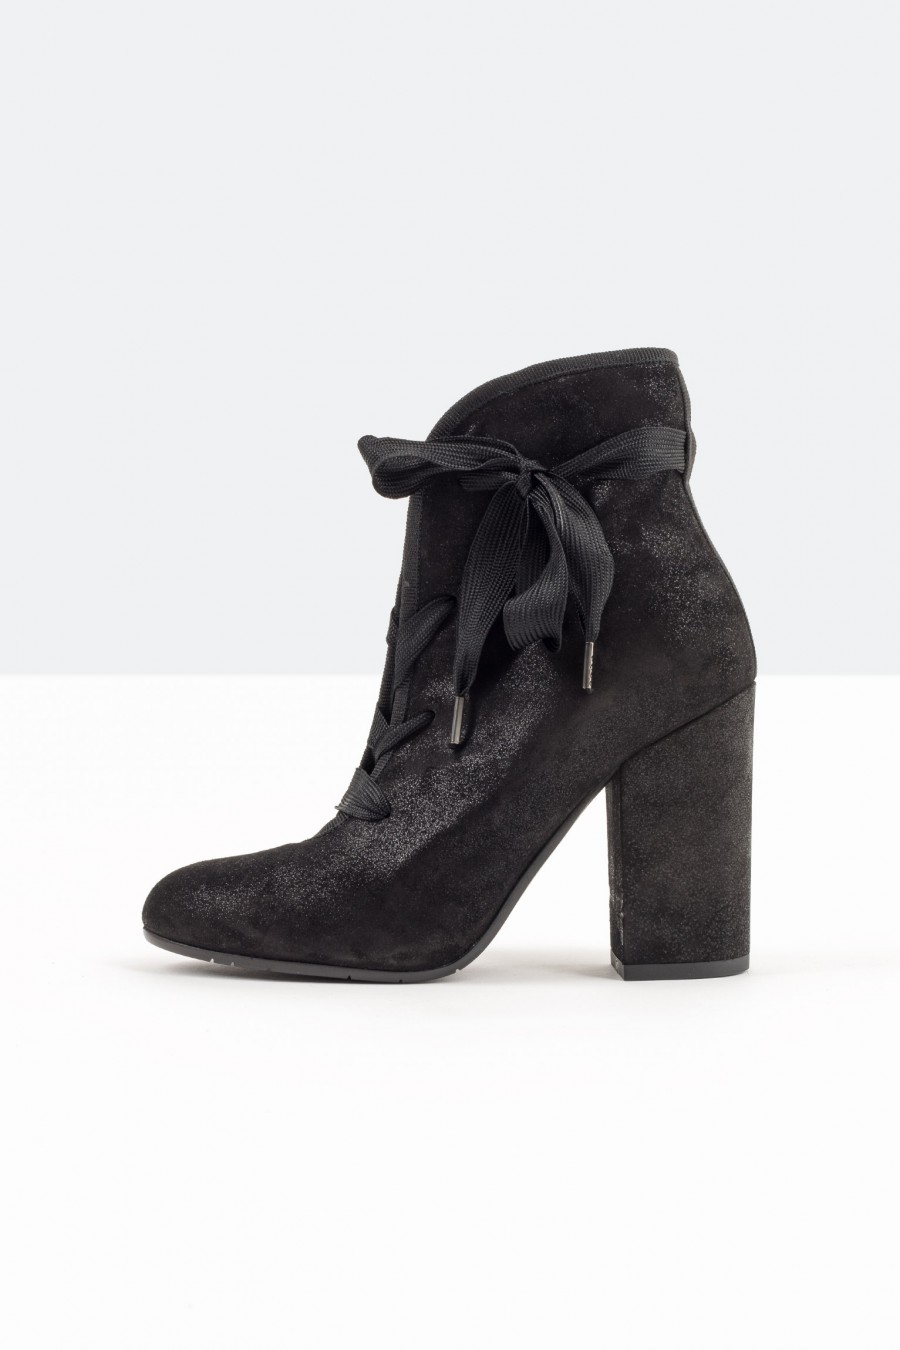 High heeled black boots with laces